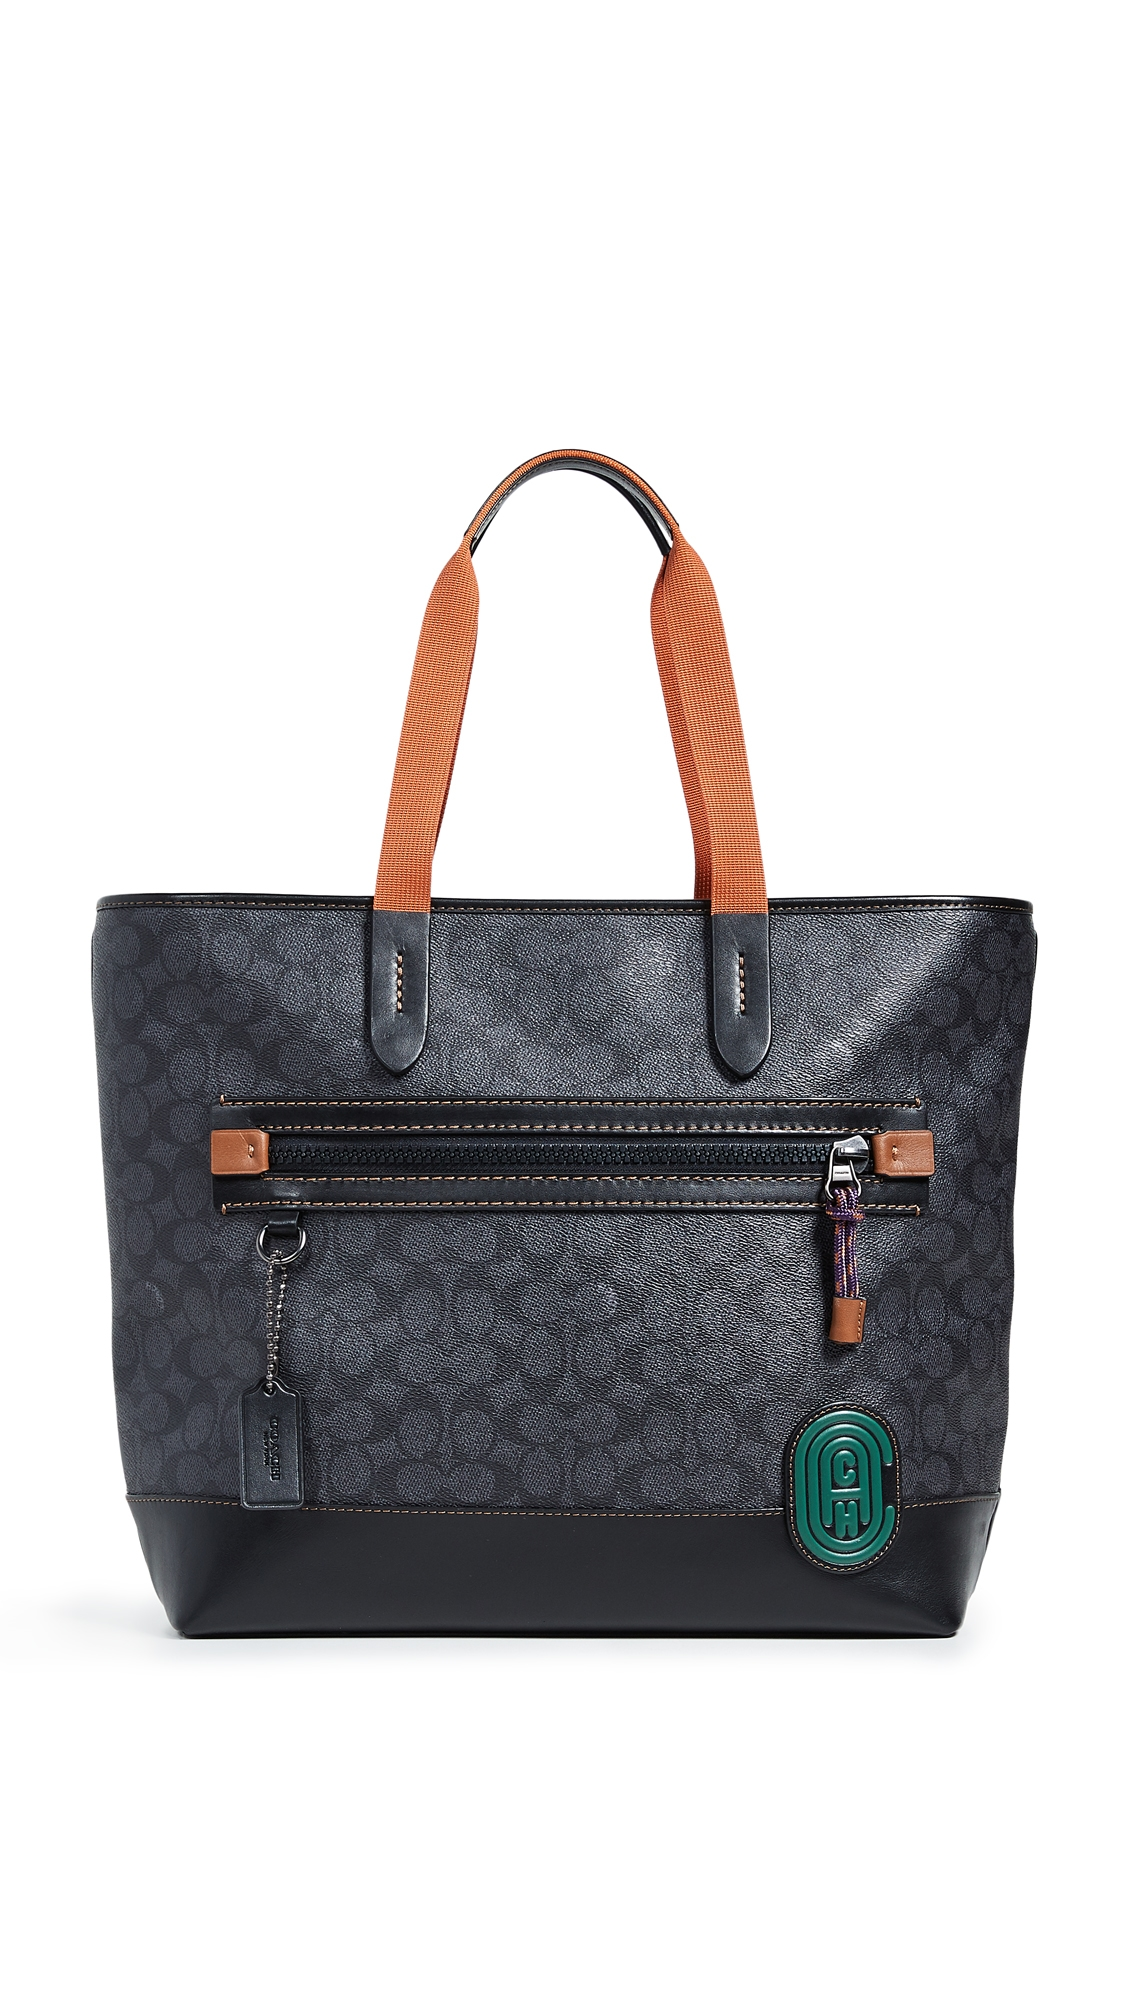 Coach Totes ACADEMY TOTE